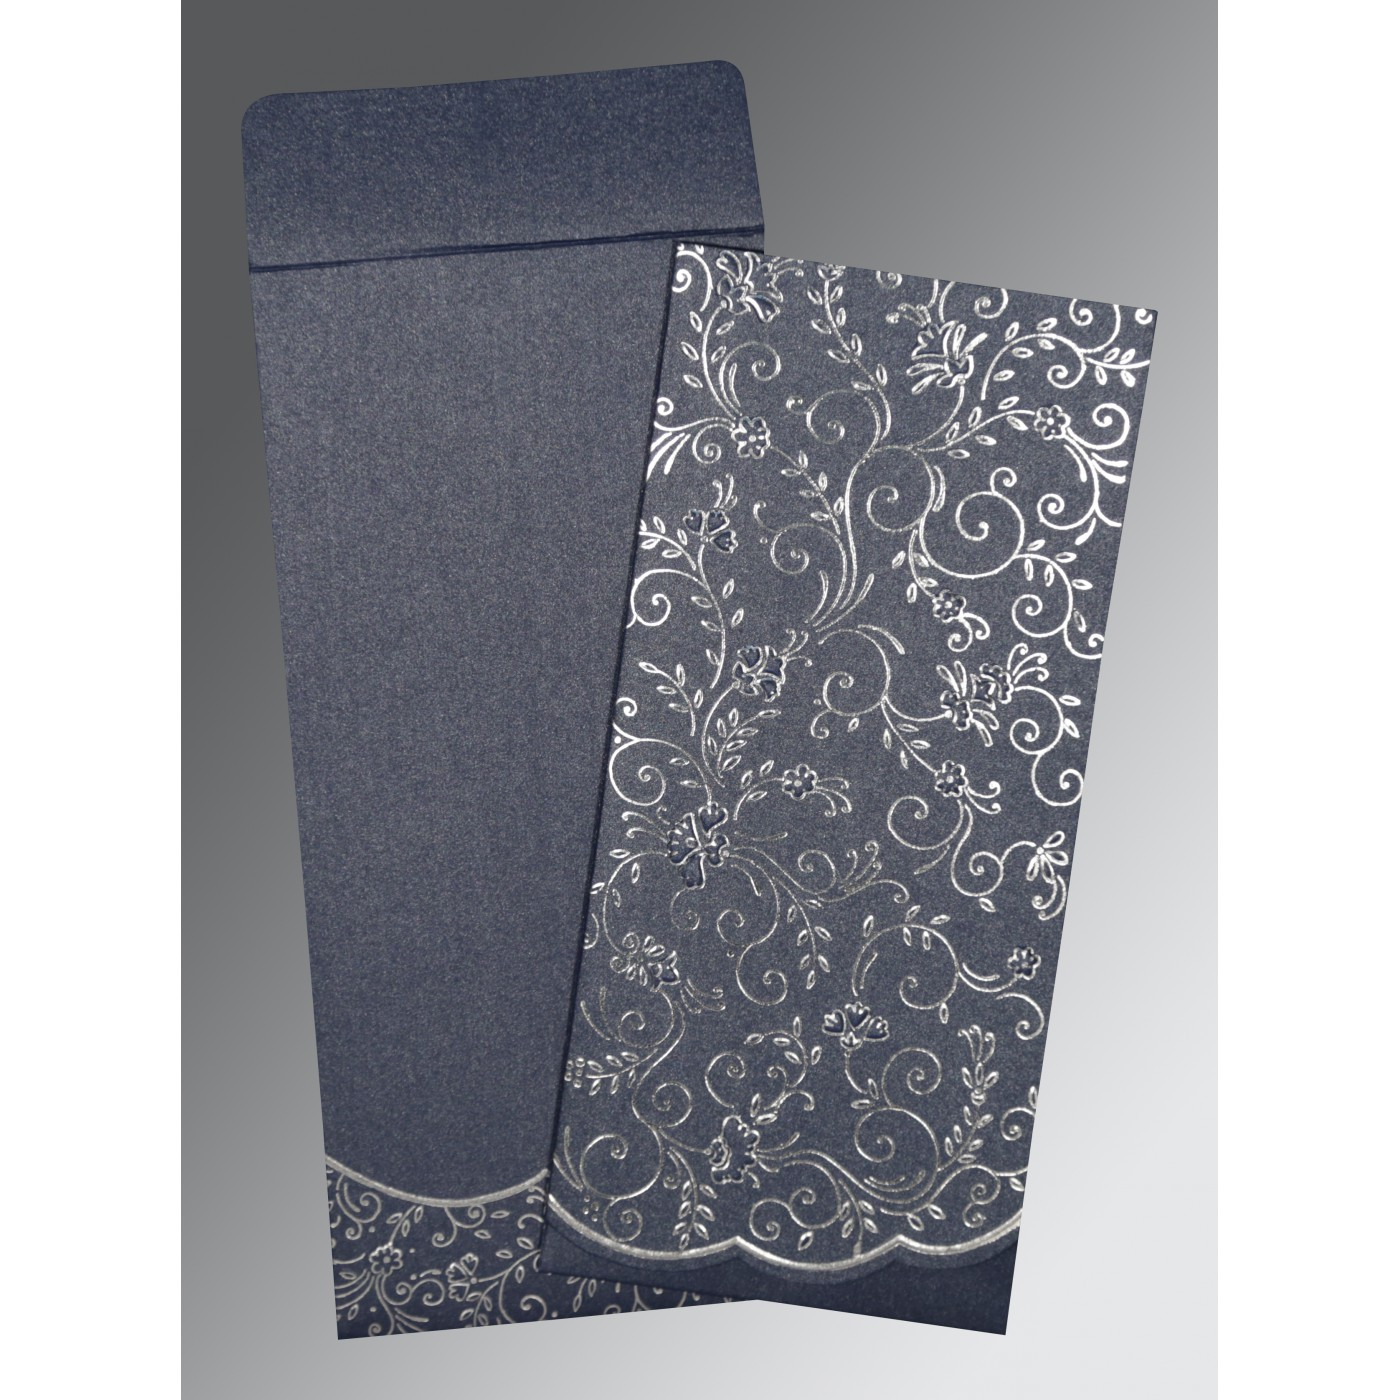 Foil Stamped Wedding Invitations: MIDNIGHT BLUE SHIMMERY FOIL STAMPED WEDDING INVITATION : I